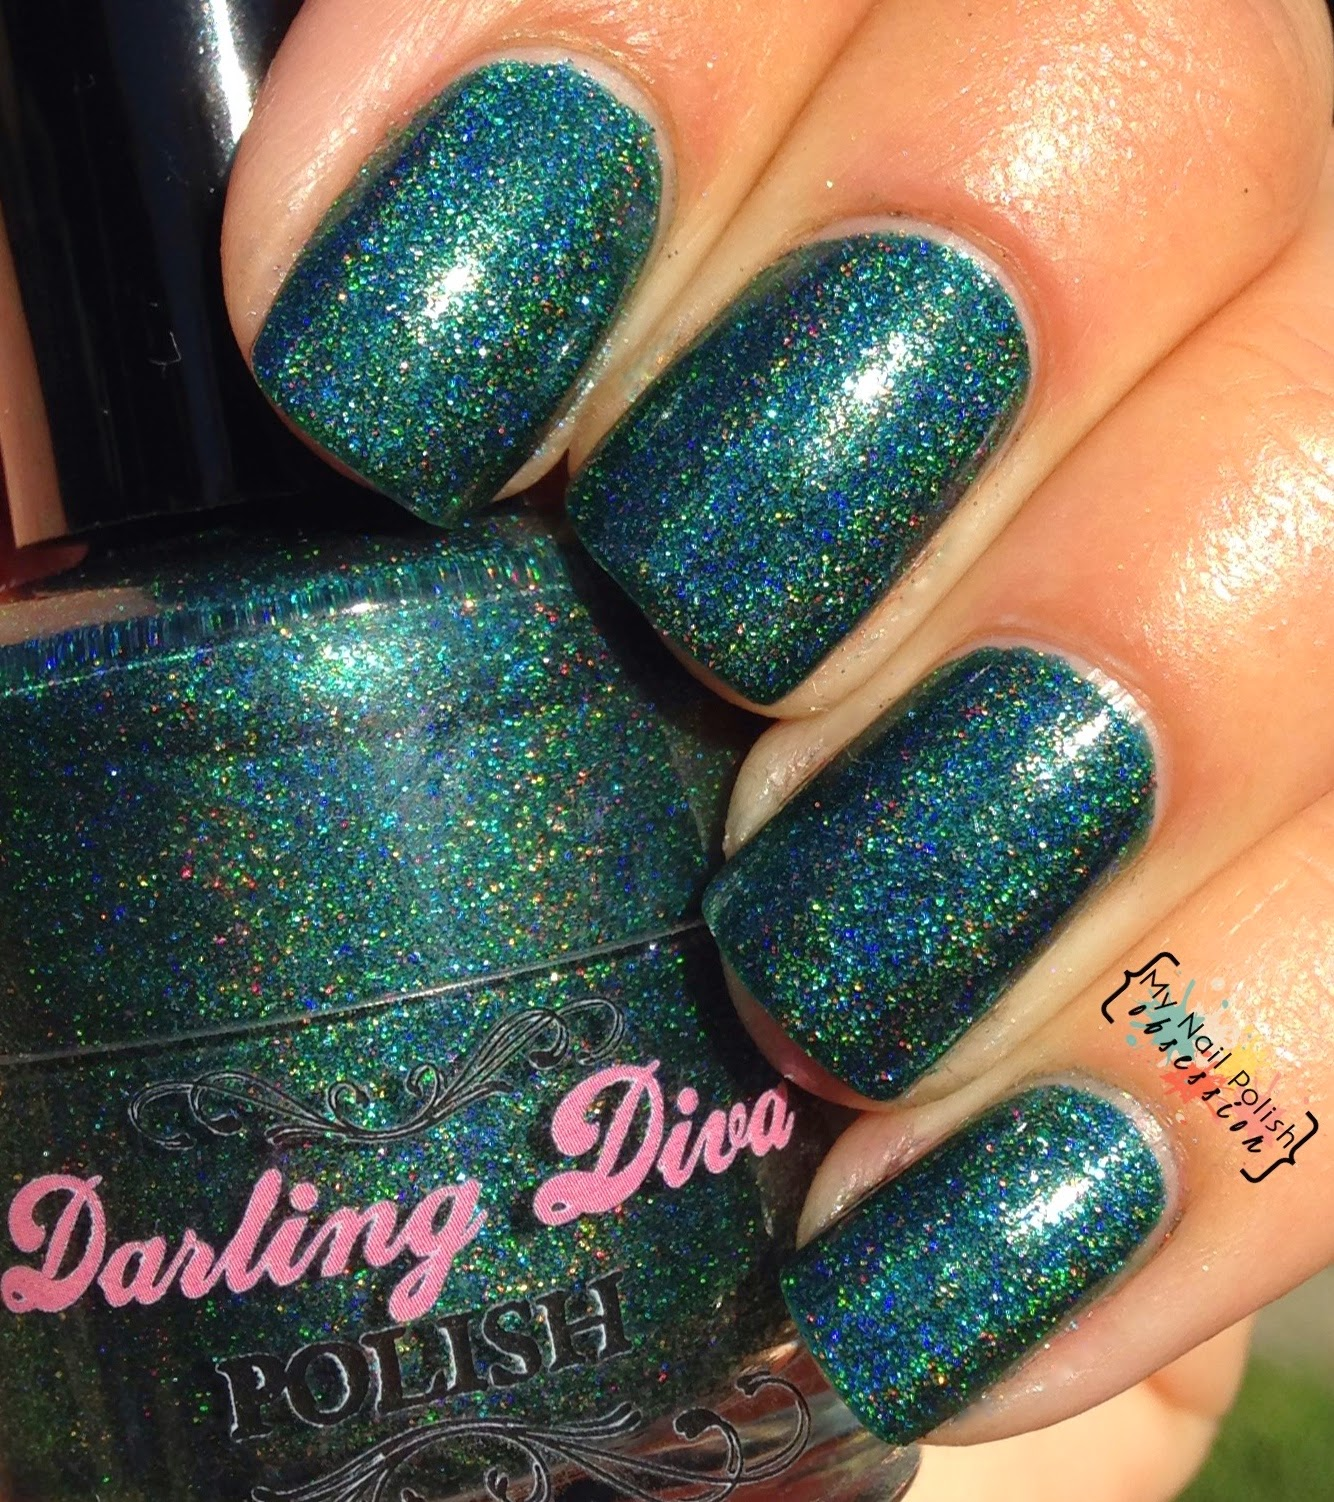 Darling Diva Polish The Witching Hour